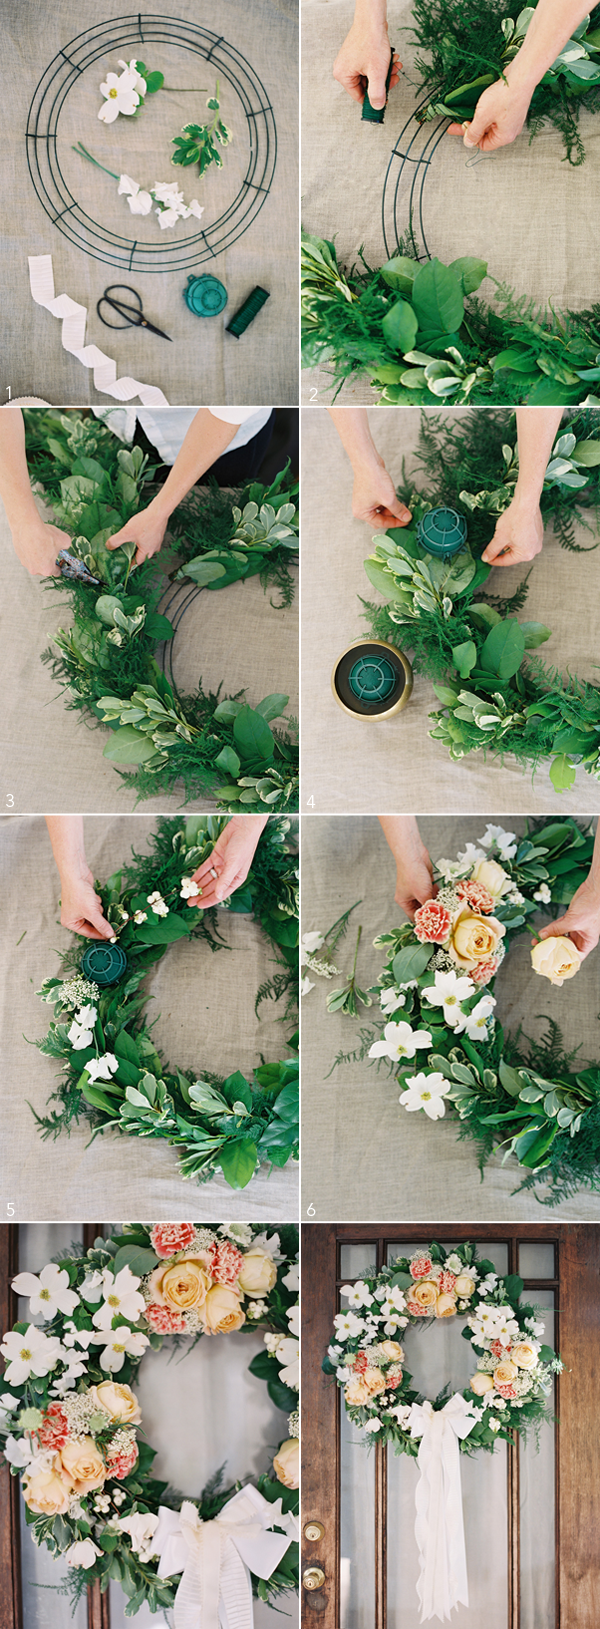 DIY Wedding Wreath - DIY Weddings - Once Wed